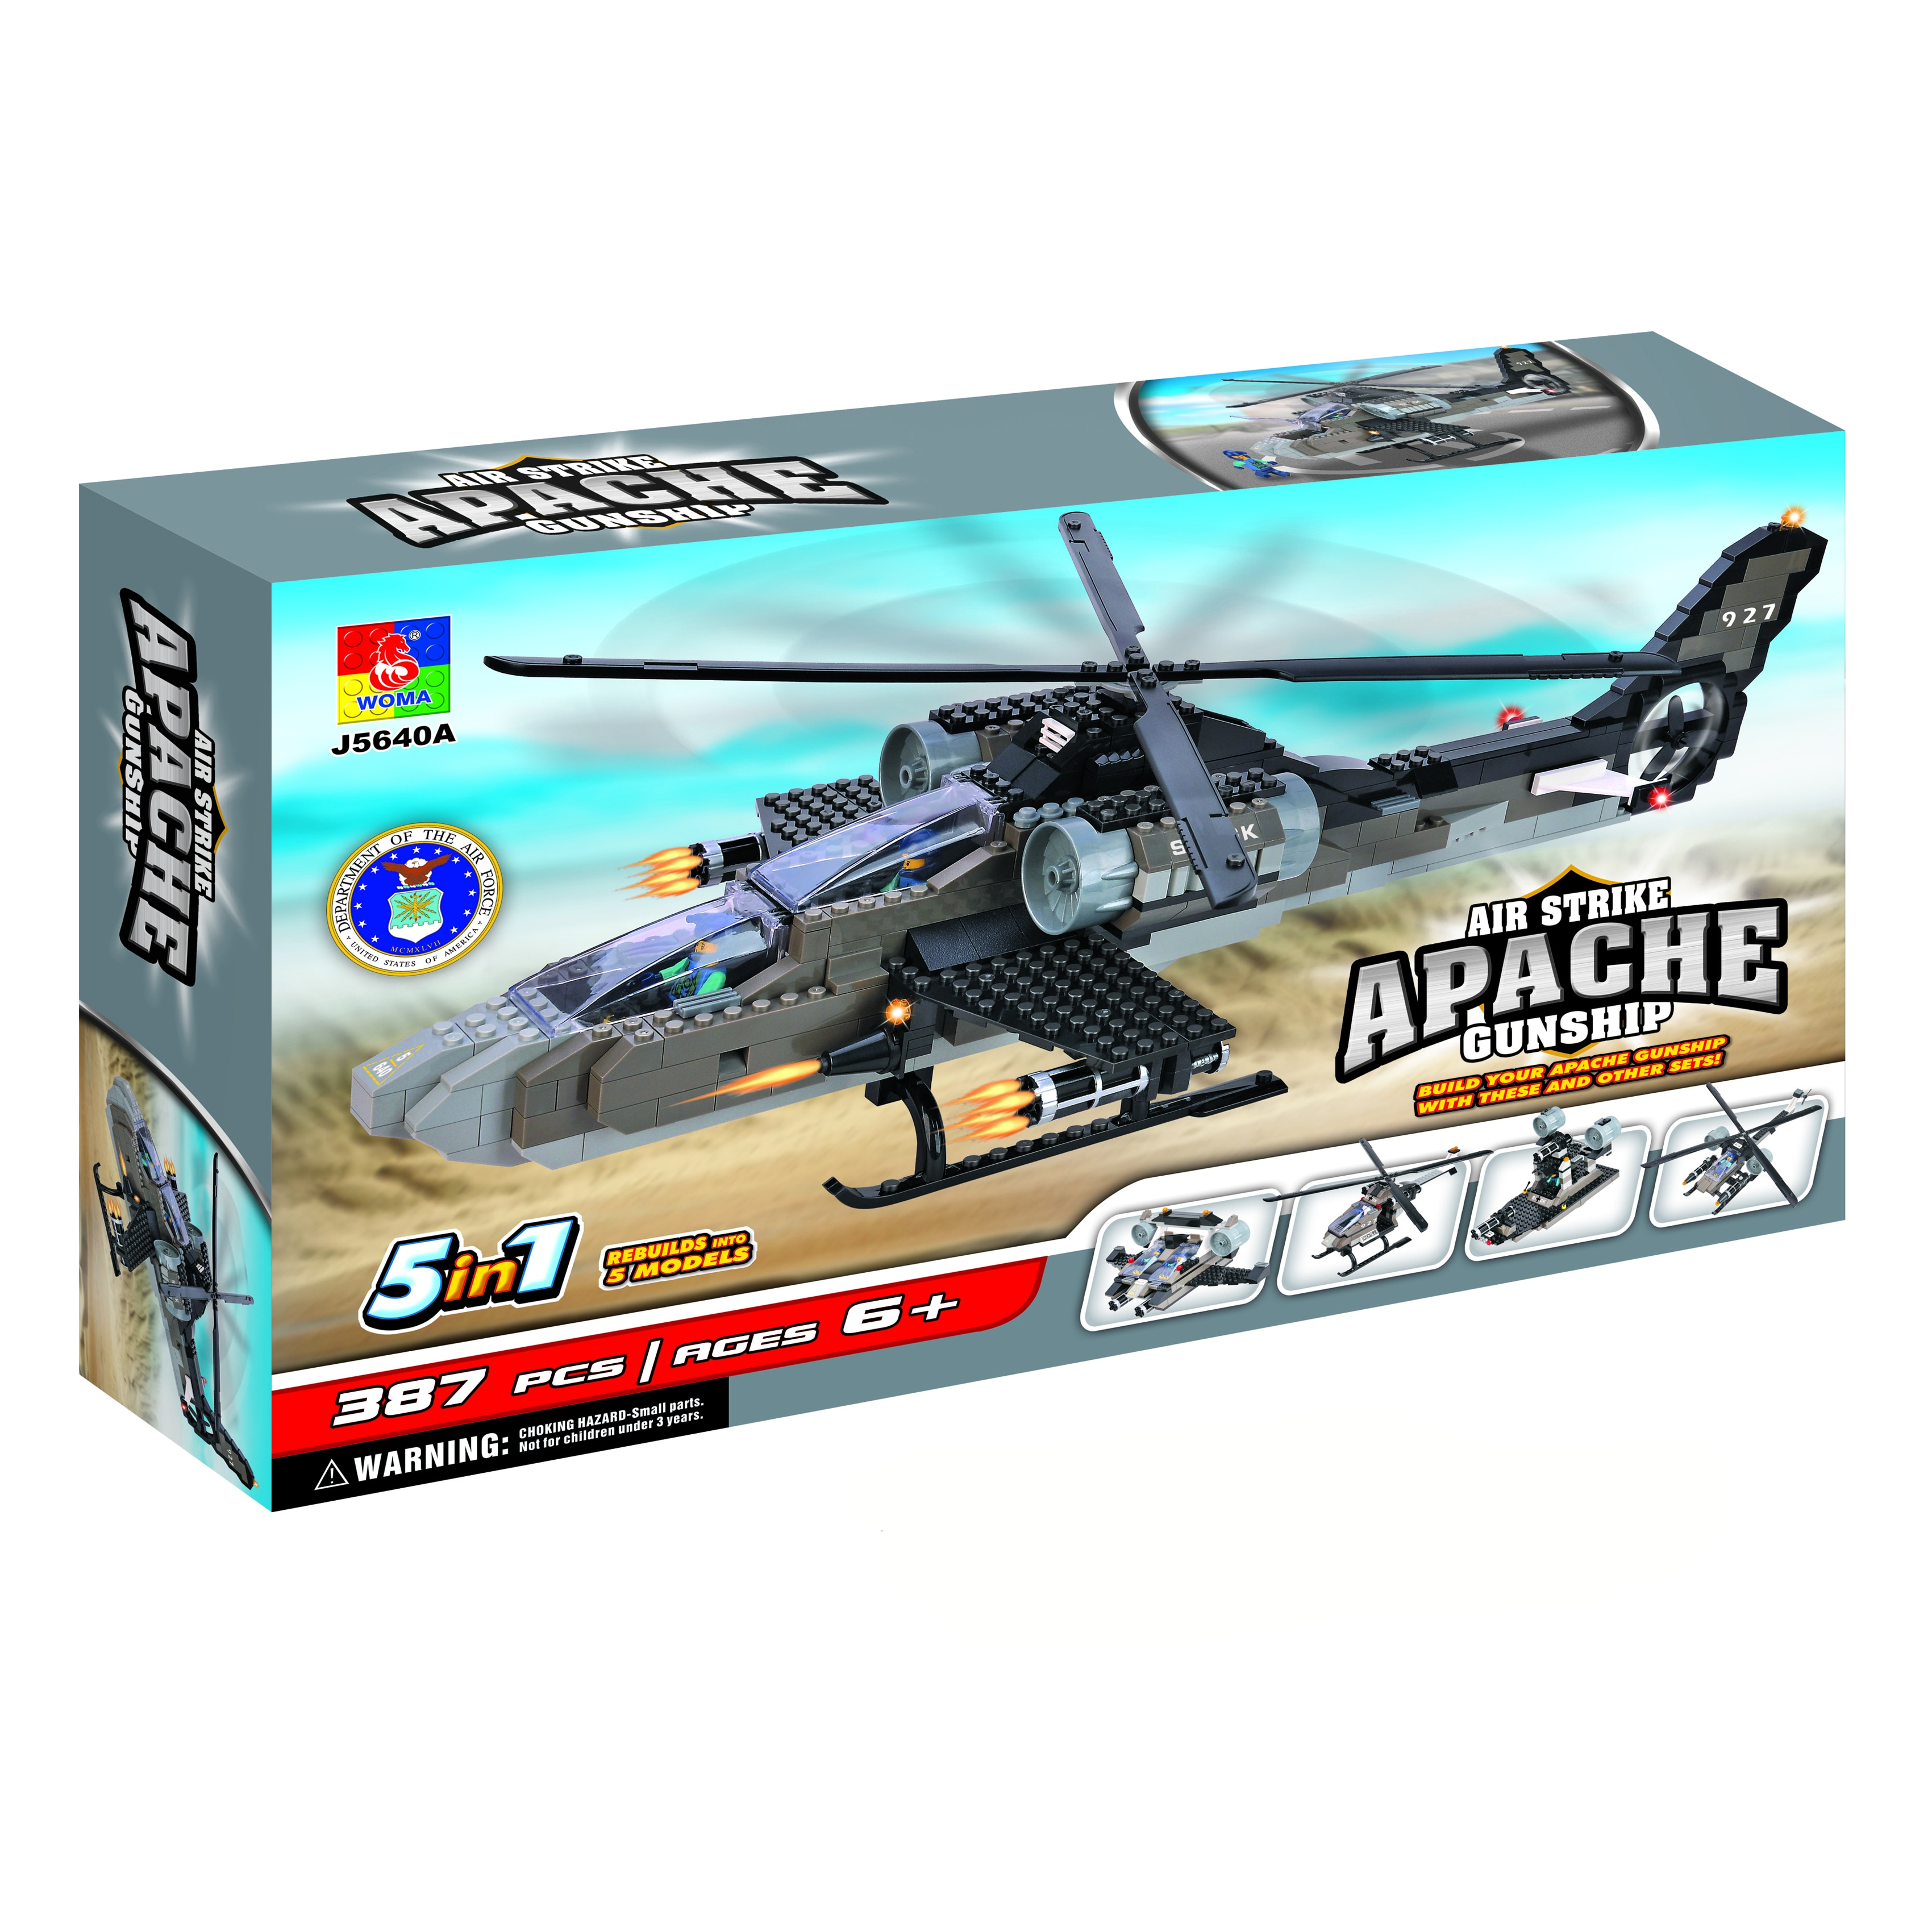 Fun Blocks Military Apache Helicopter 5-in-1 Brick Set (387 pieces) at Sears.com